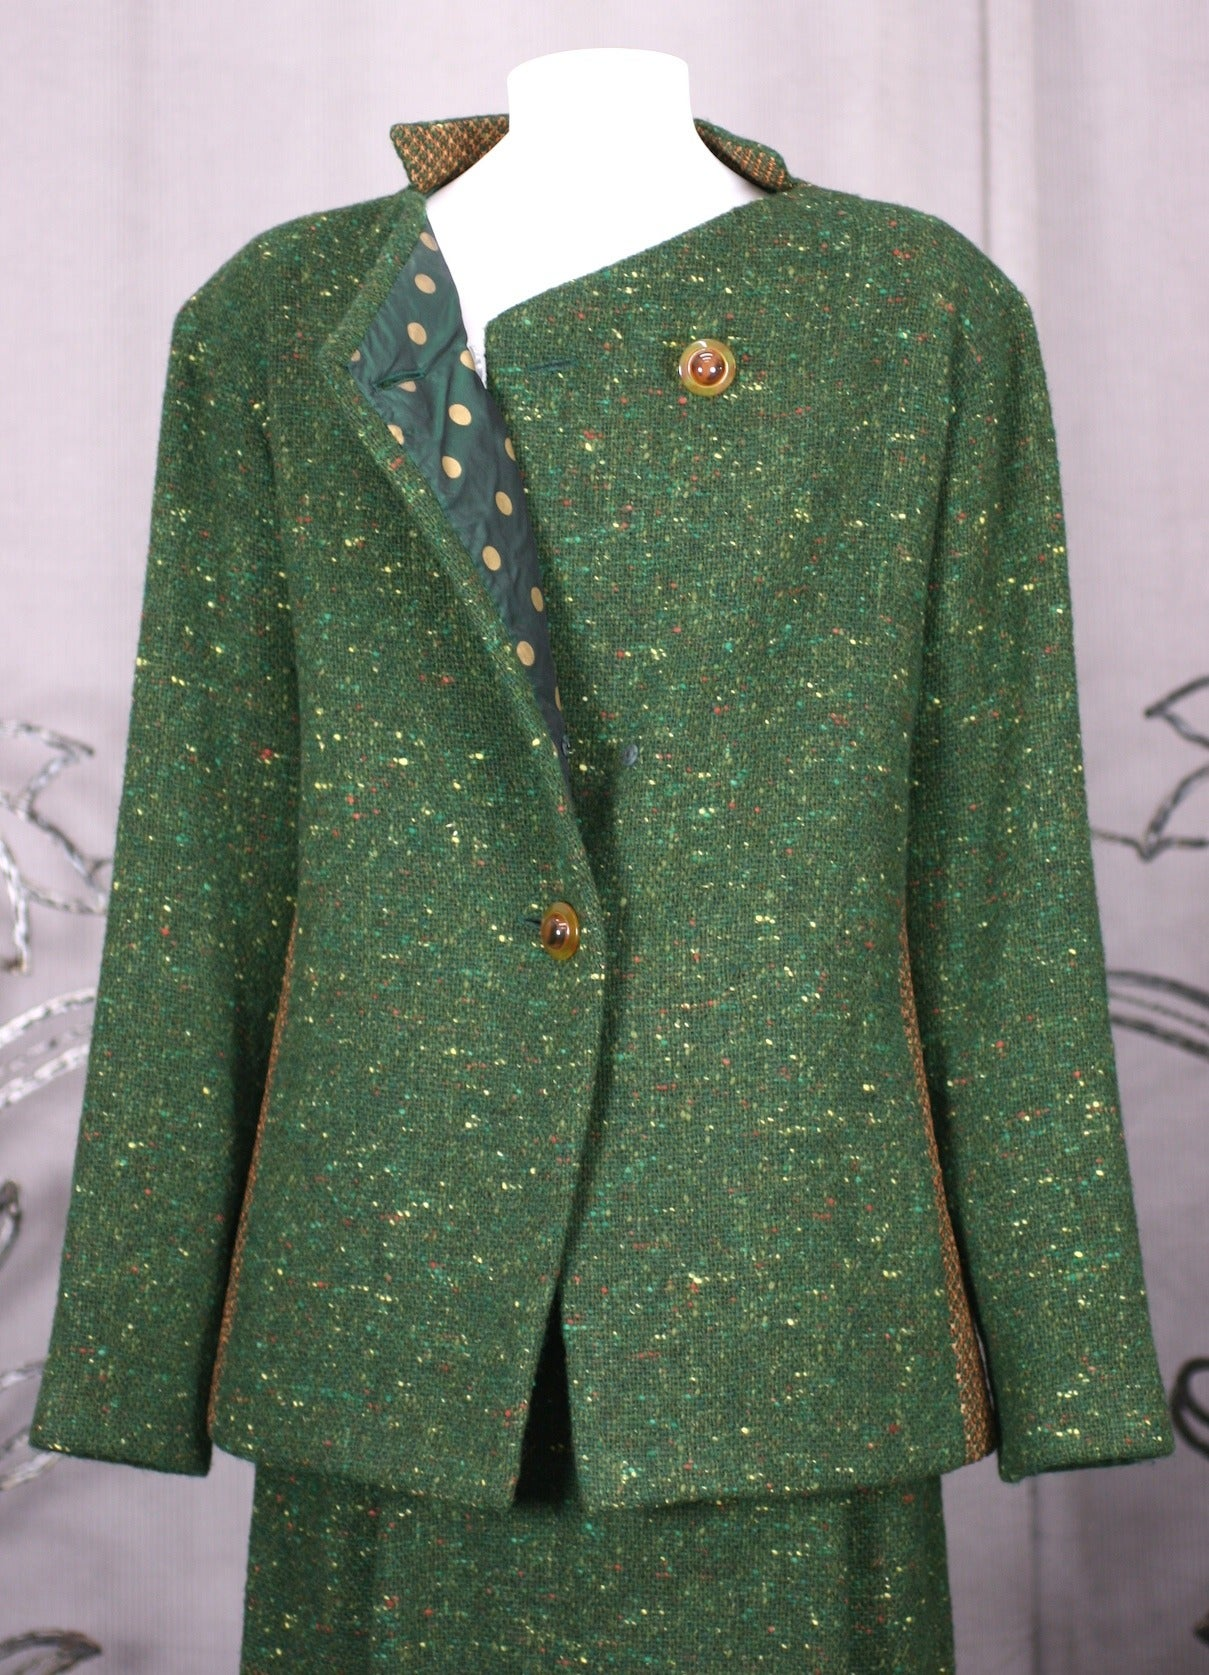 Geoffrey Beene Green Tweed Ensemble with inserts of open weave pink-peach tweed in signature body contouring cuts. Lined completely in green polka dot silk taffeta, Beene approached his sportswear with a luxuriant hand. 